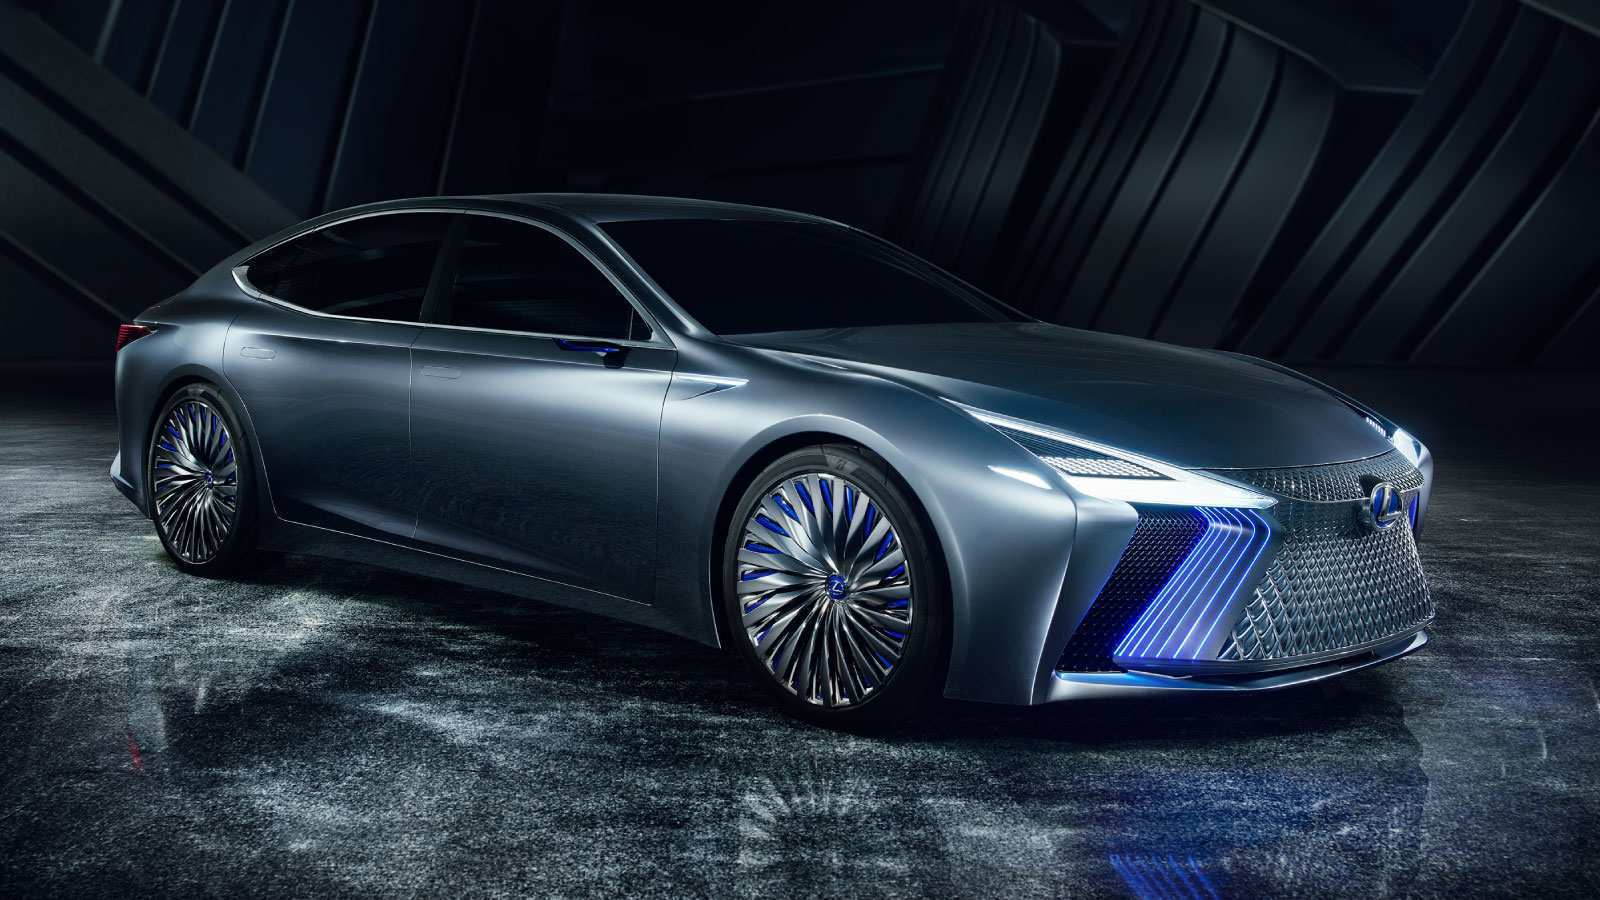 65 All New Ls Lexus 2020 Style by Ls Lexus 2020